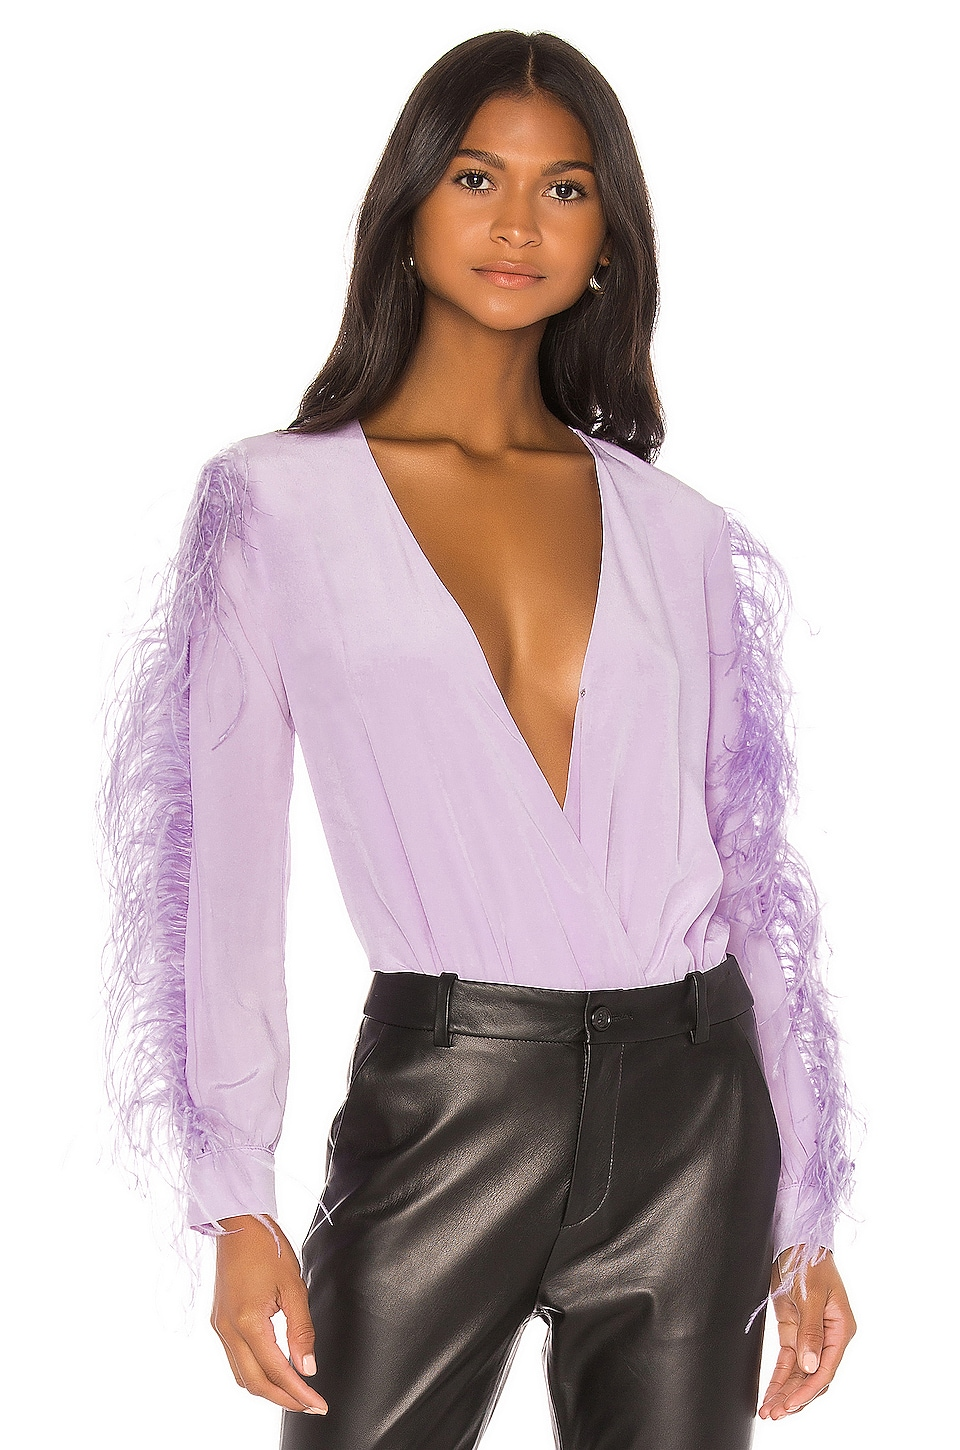 DELFI Cindy Bodysuit in Lilac